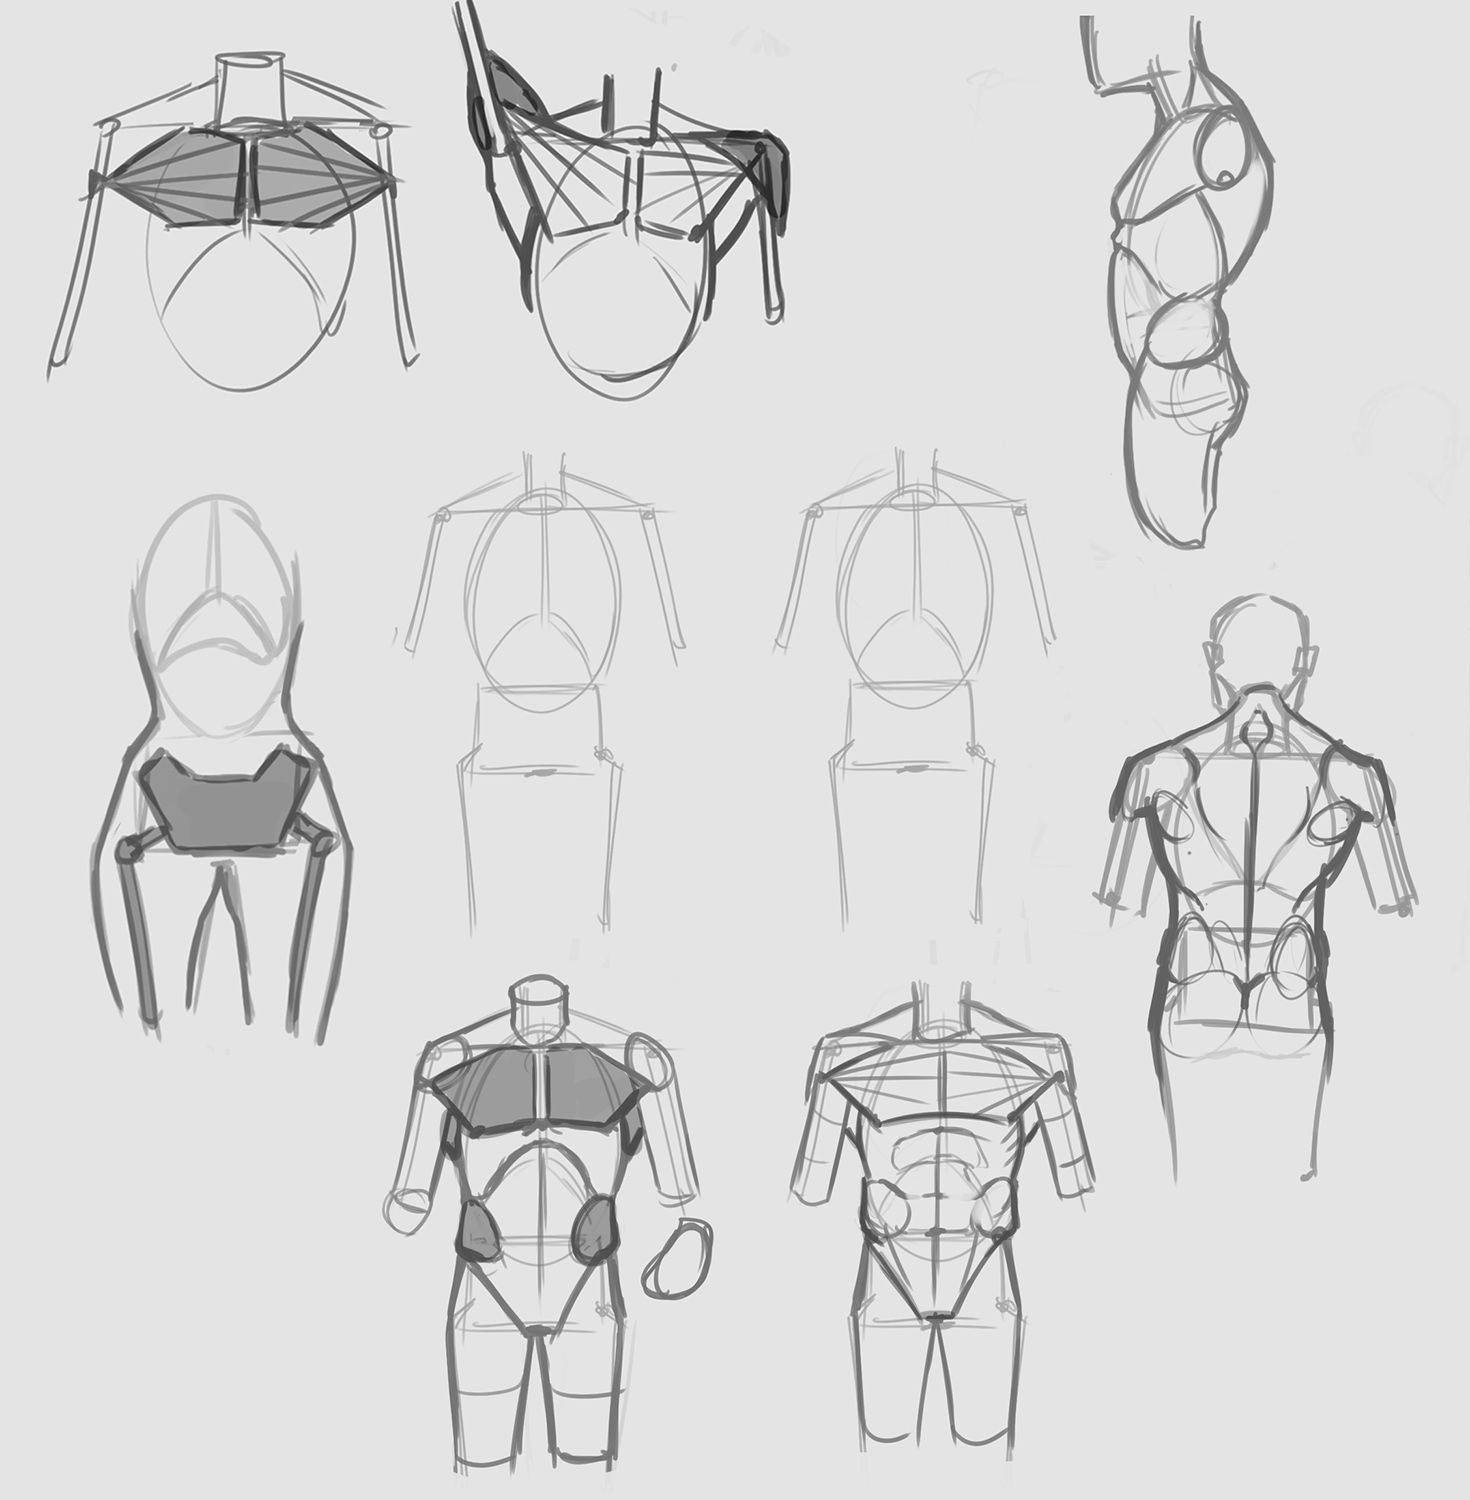 Simplified_Anatomy_Torso.jpg (1470×1500) | Anatomy | Pinterest ...